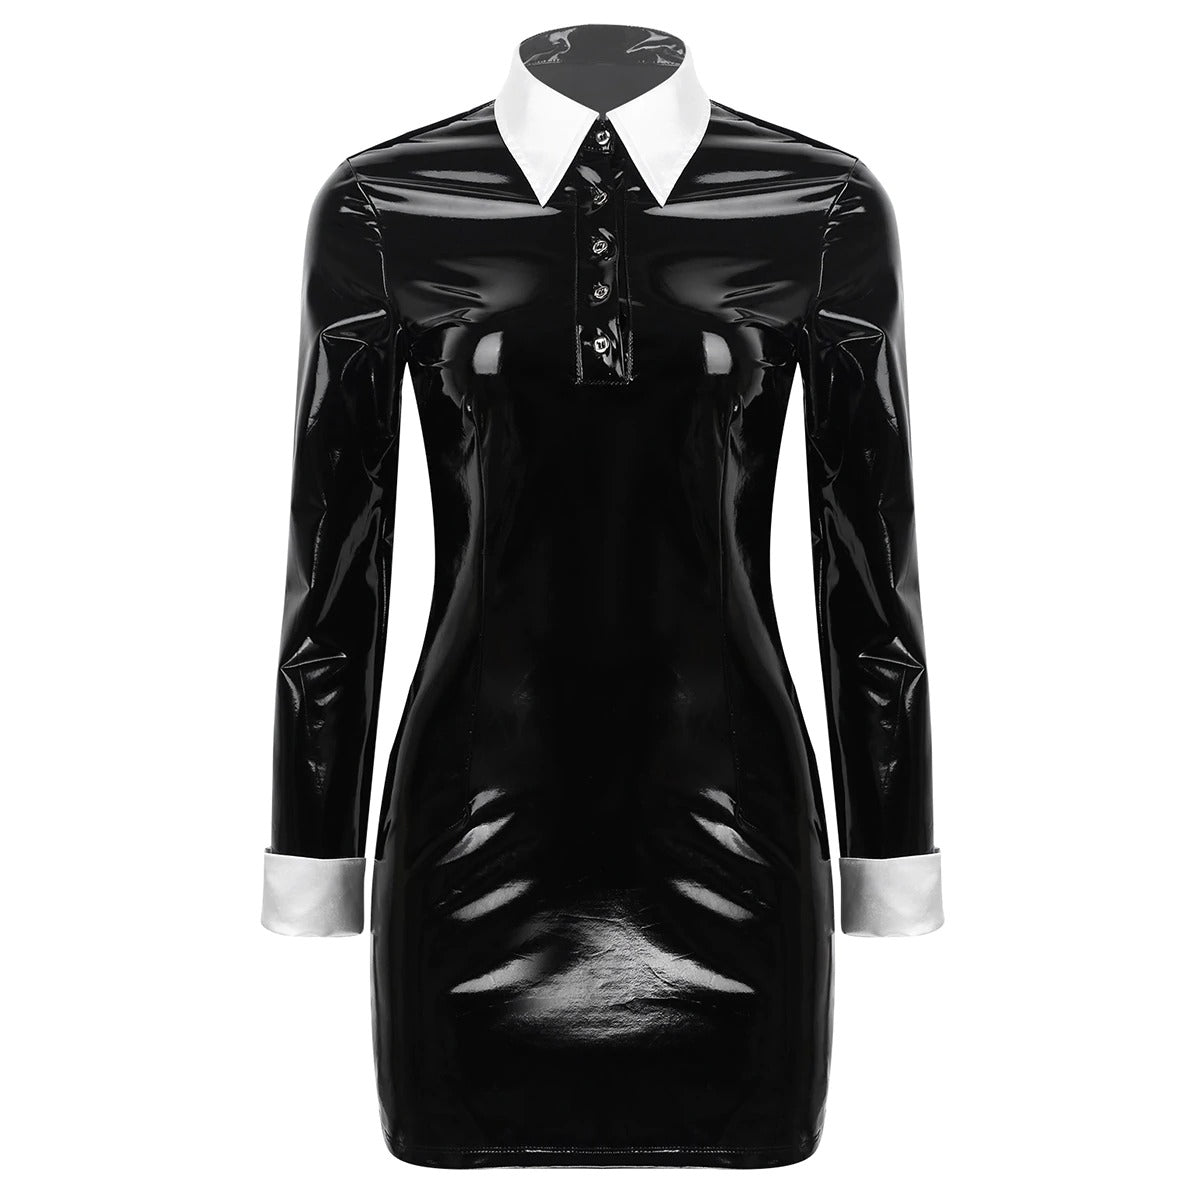 Women's Long Sleeve Mini Leather Bodycon Dress Costume / Sexy Gothic Black Latex Babydoll Dress - HARD'N'HEAVY